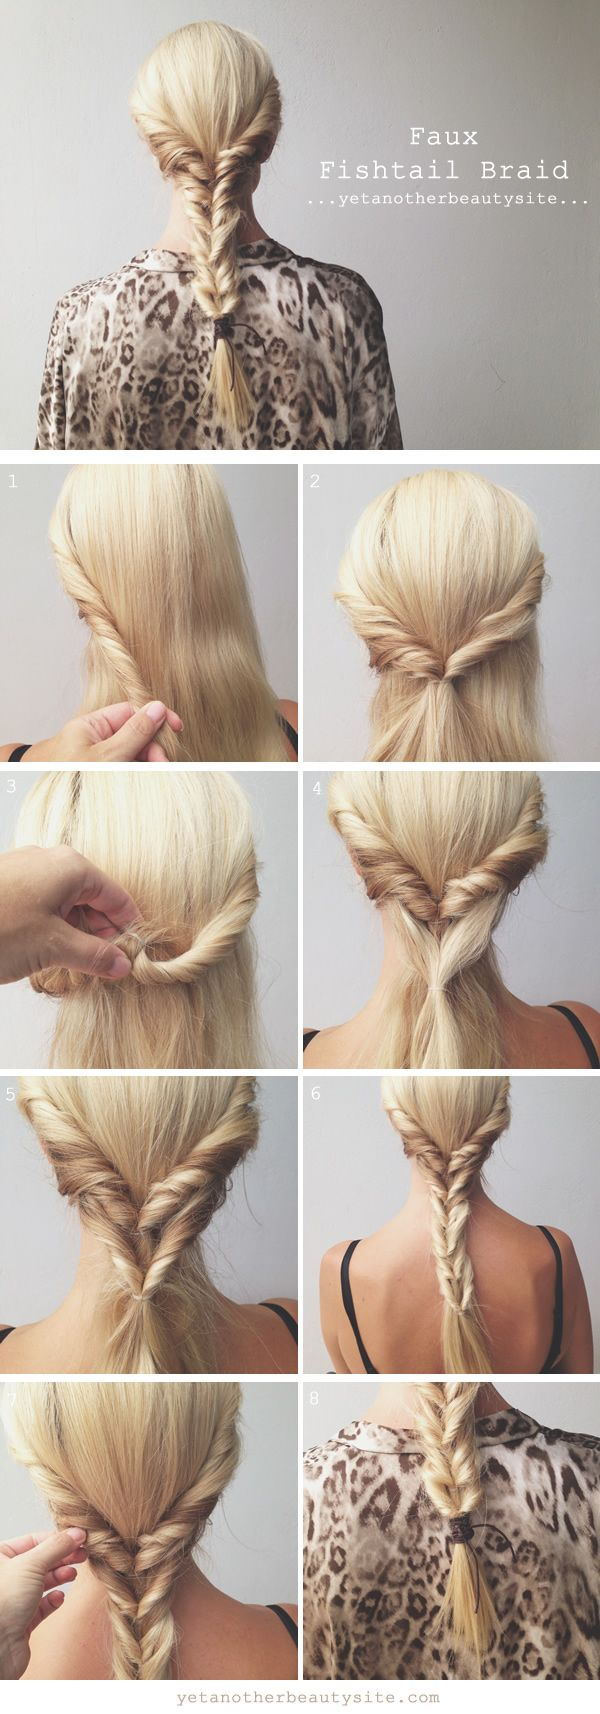 Faux fishtail